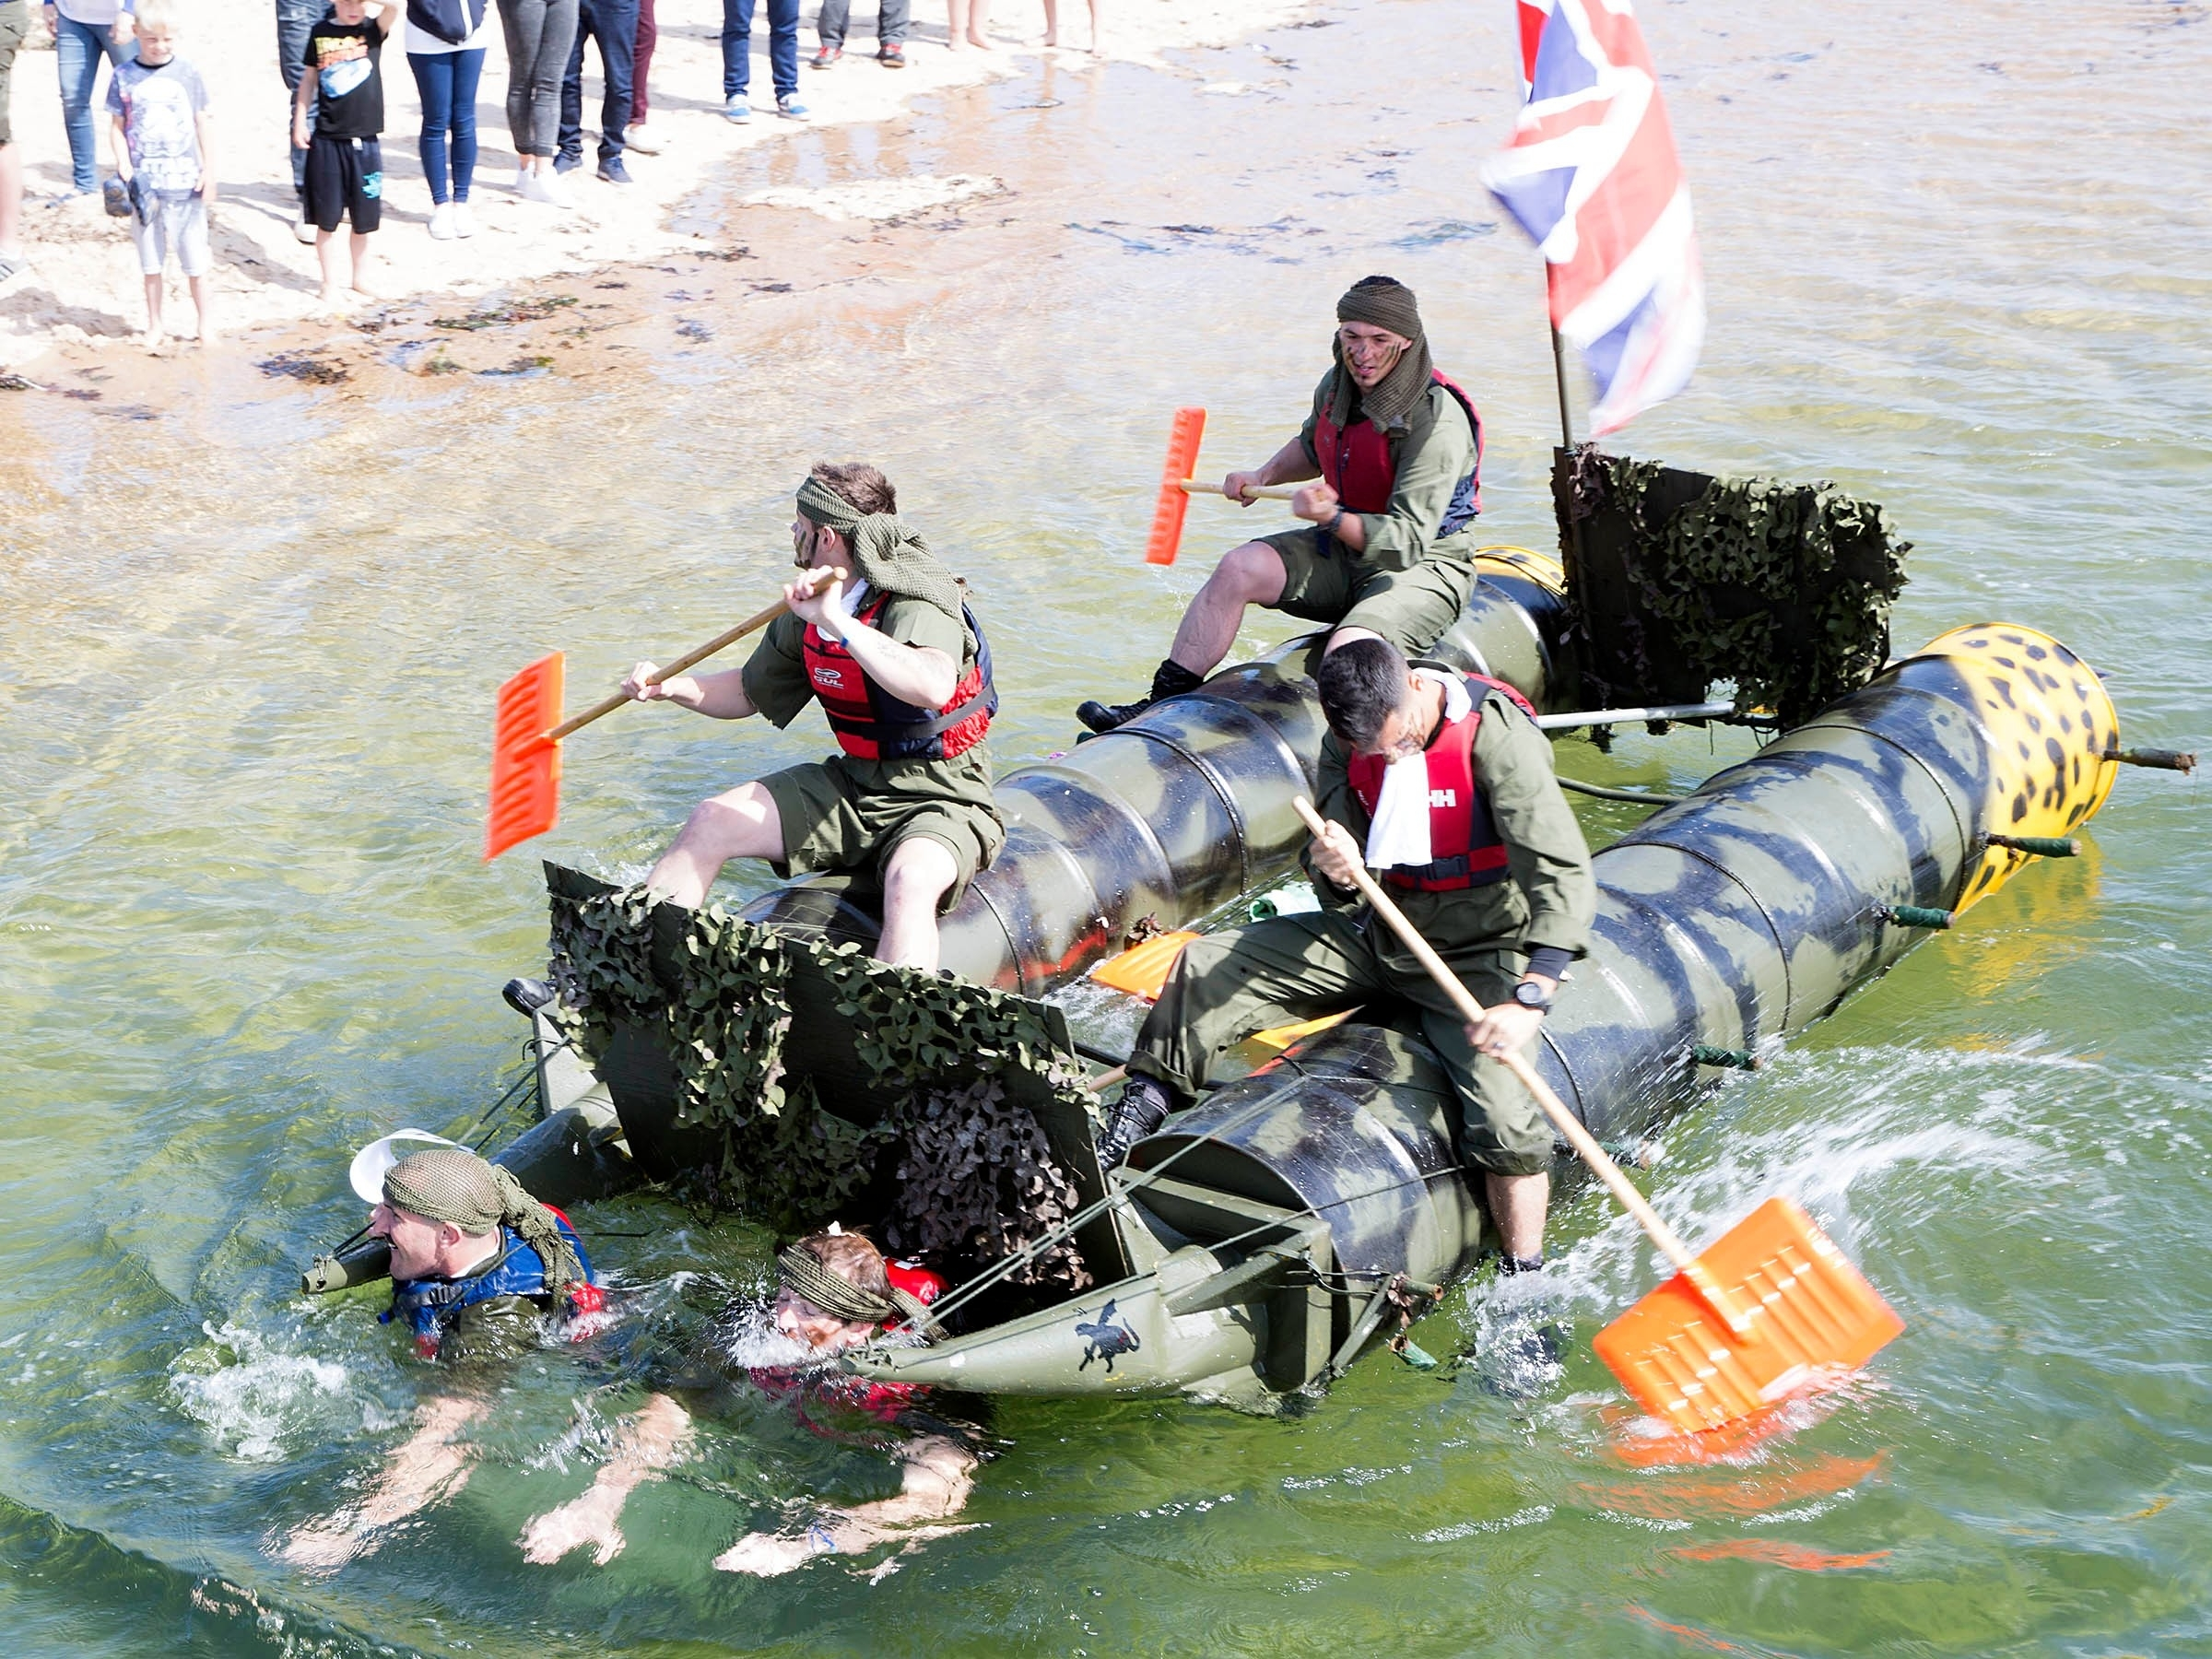 The Annual Lossiemouth RAFT RACE 2015. This years theme was BoB First place, the RAF Lossiemouthpolice  Dog Secotion. 2nd; MFR  3rd the Steamboat